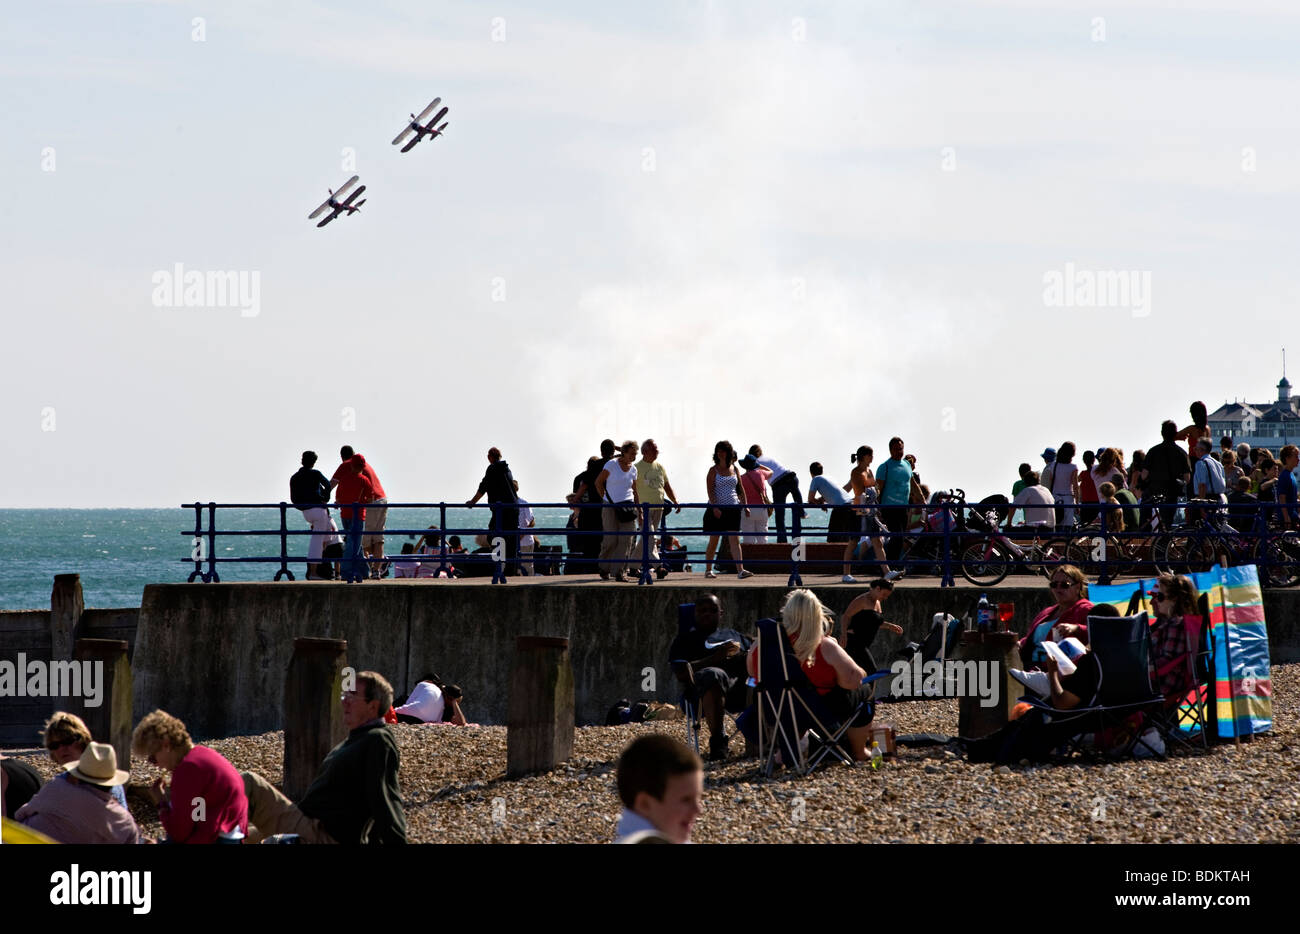 Two biplanes perform for the beach crowds at the Eastbourne airshow, England. - Stock Image